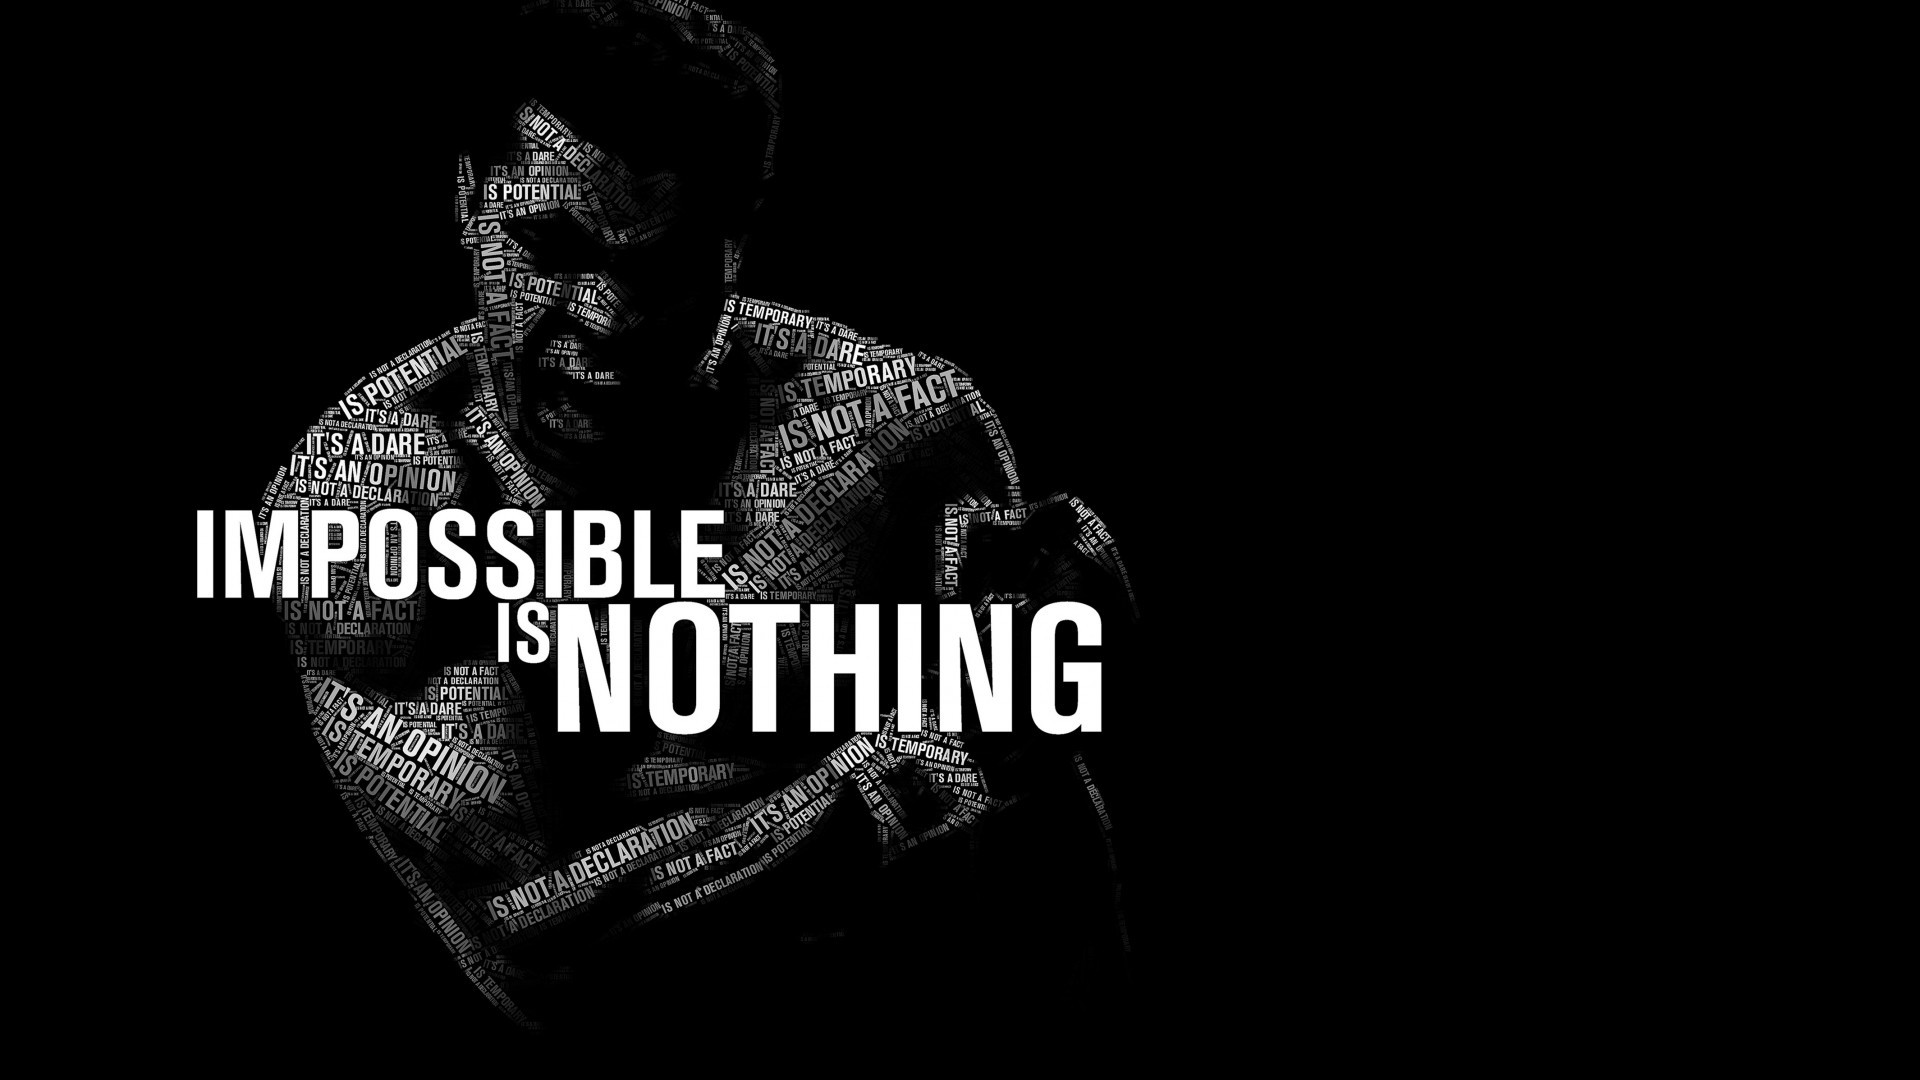 You transcended sports like no other. Ali Bomaye  https://www.hdwallpapers.net/quotes/impossible-is-nothing-muhammad-ali- wallpaper-548.htm